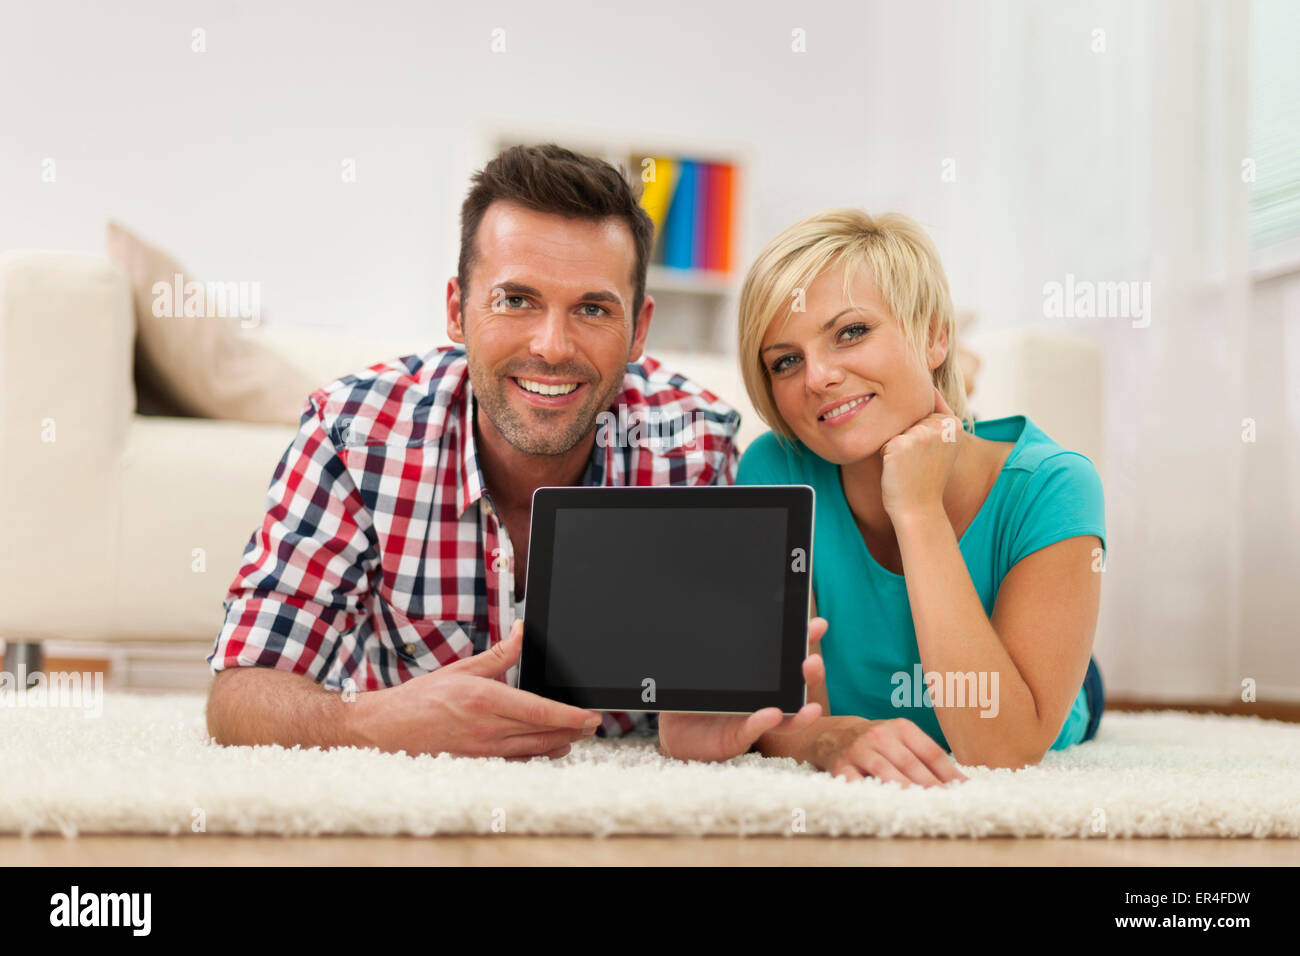 young couple with a digital tablet - Stock Image